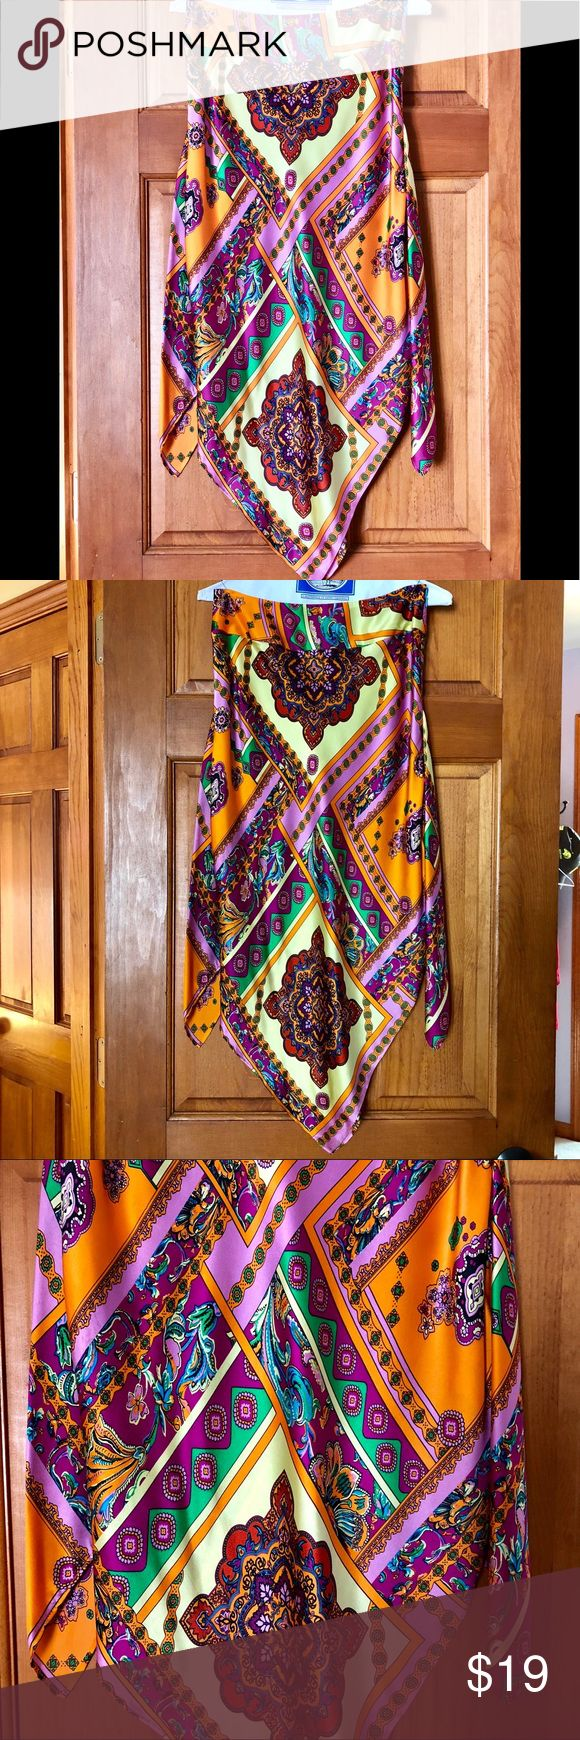 Silk Multi color Handkerchief style skirt 100% silk handkerchief style skirt designed by Andrea Behar for Boston Proper. This multi color skirt is perfect for any occasion.   Worn a few times, excellent condition. Boston Proper Skirts Asymmetrical